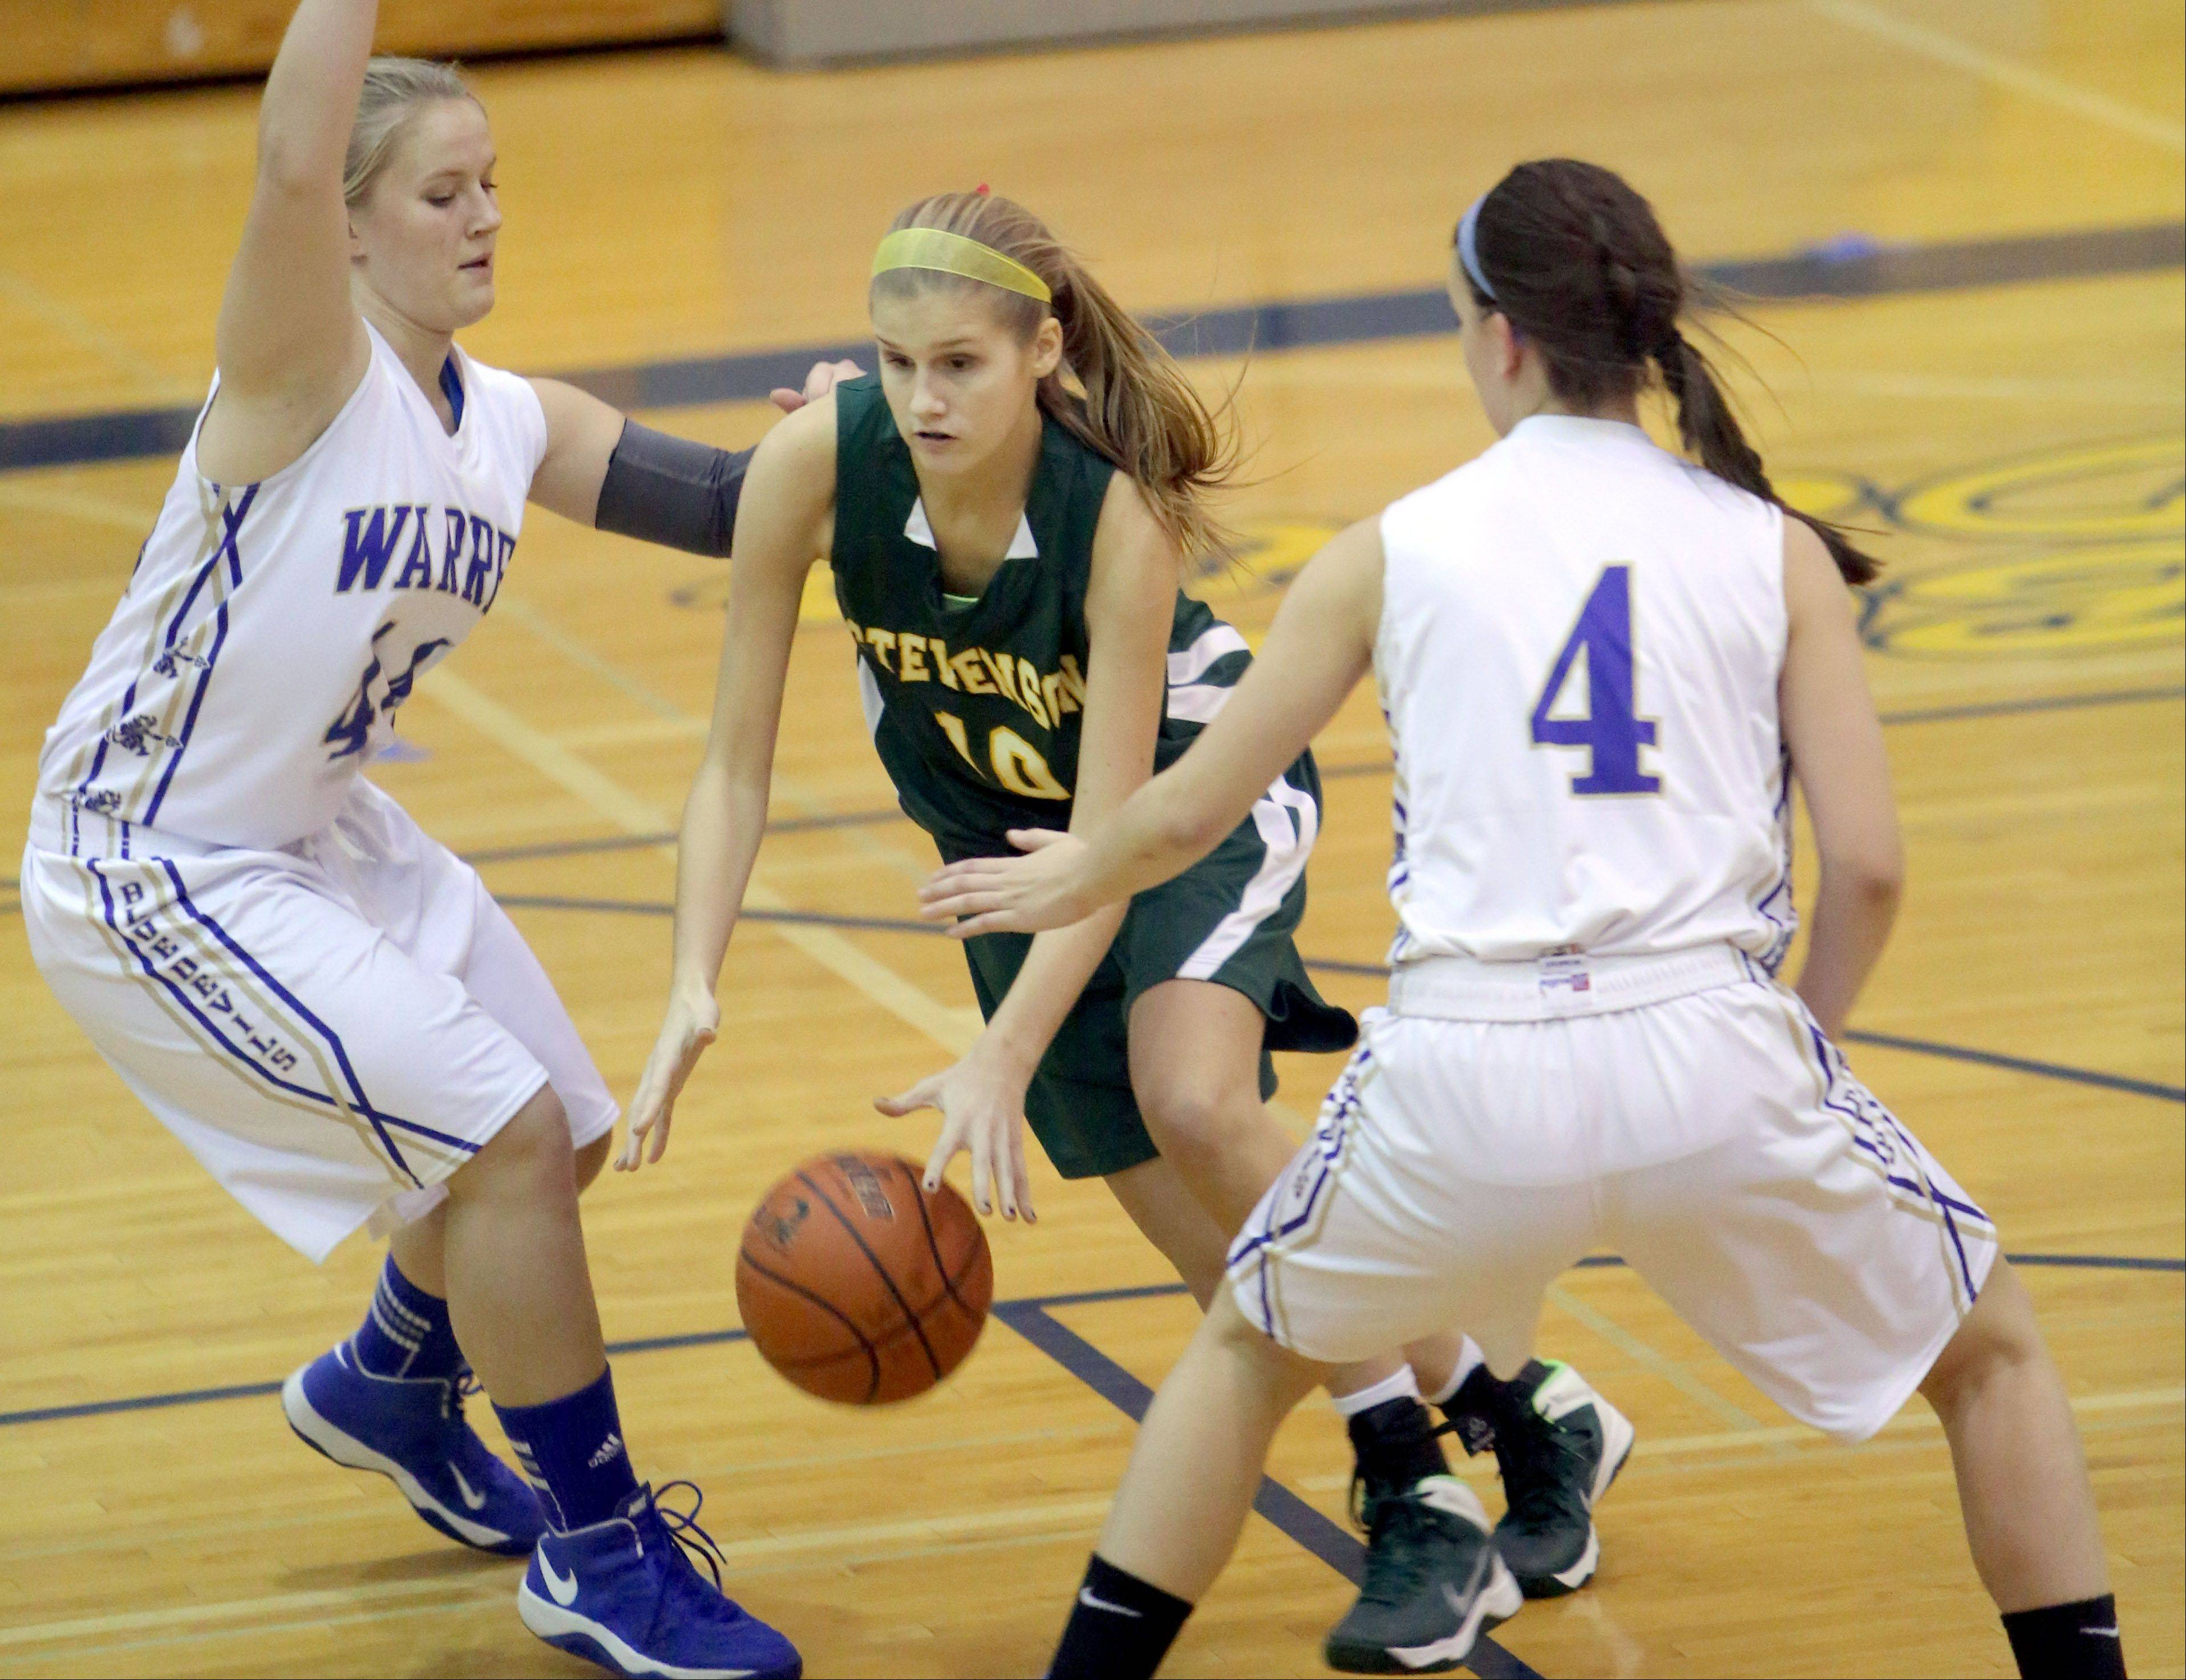 Stevenson's Chloe Ekenberg, middle, drives through Warren's Keely Knobbe, left, and Kylie Nedelka on Tuesday night in Gurnee.